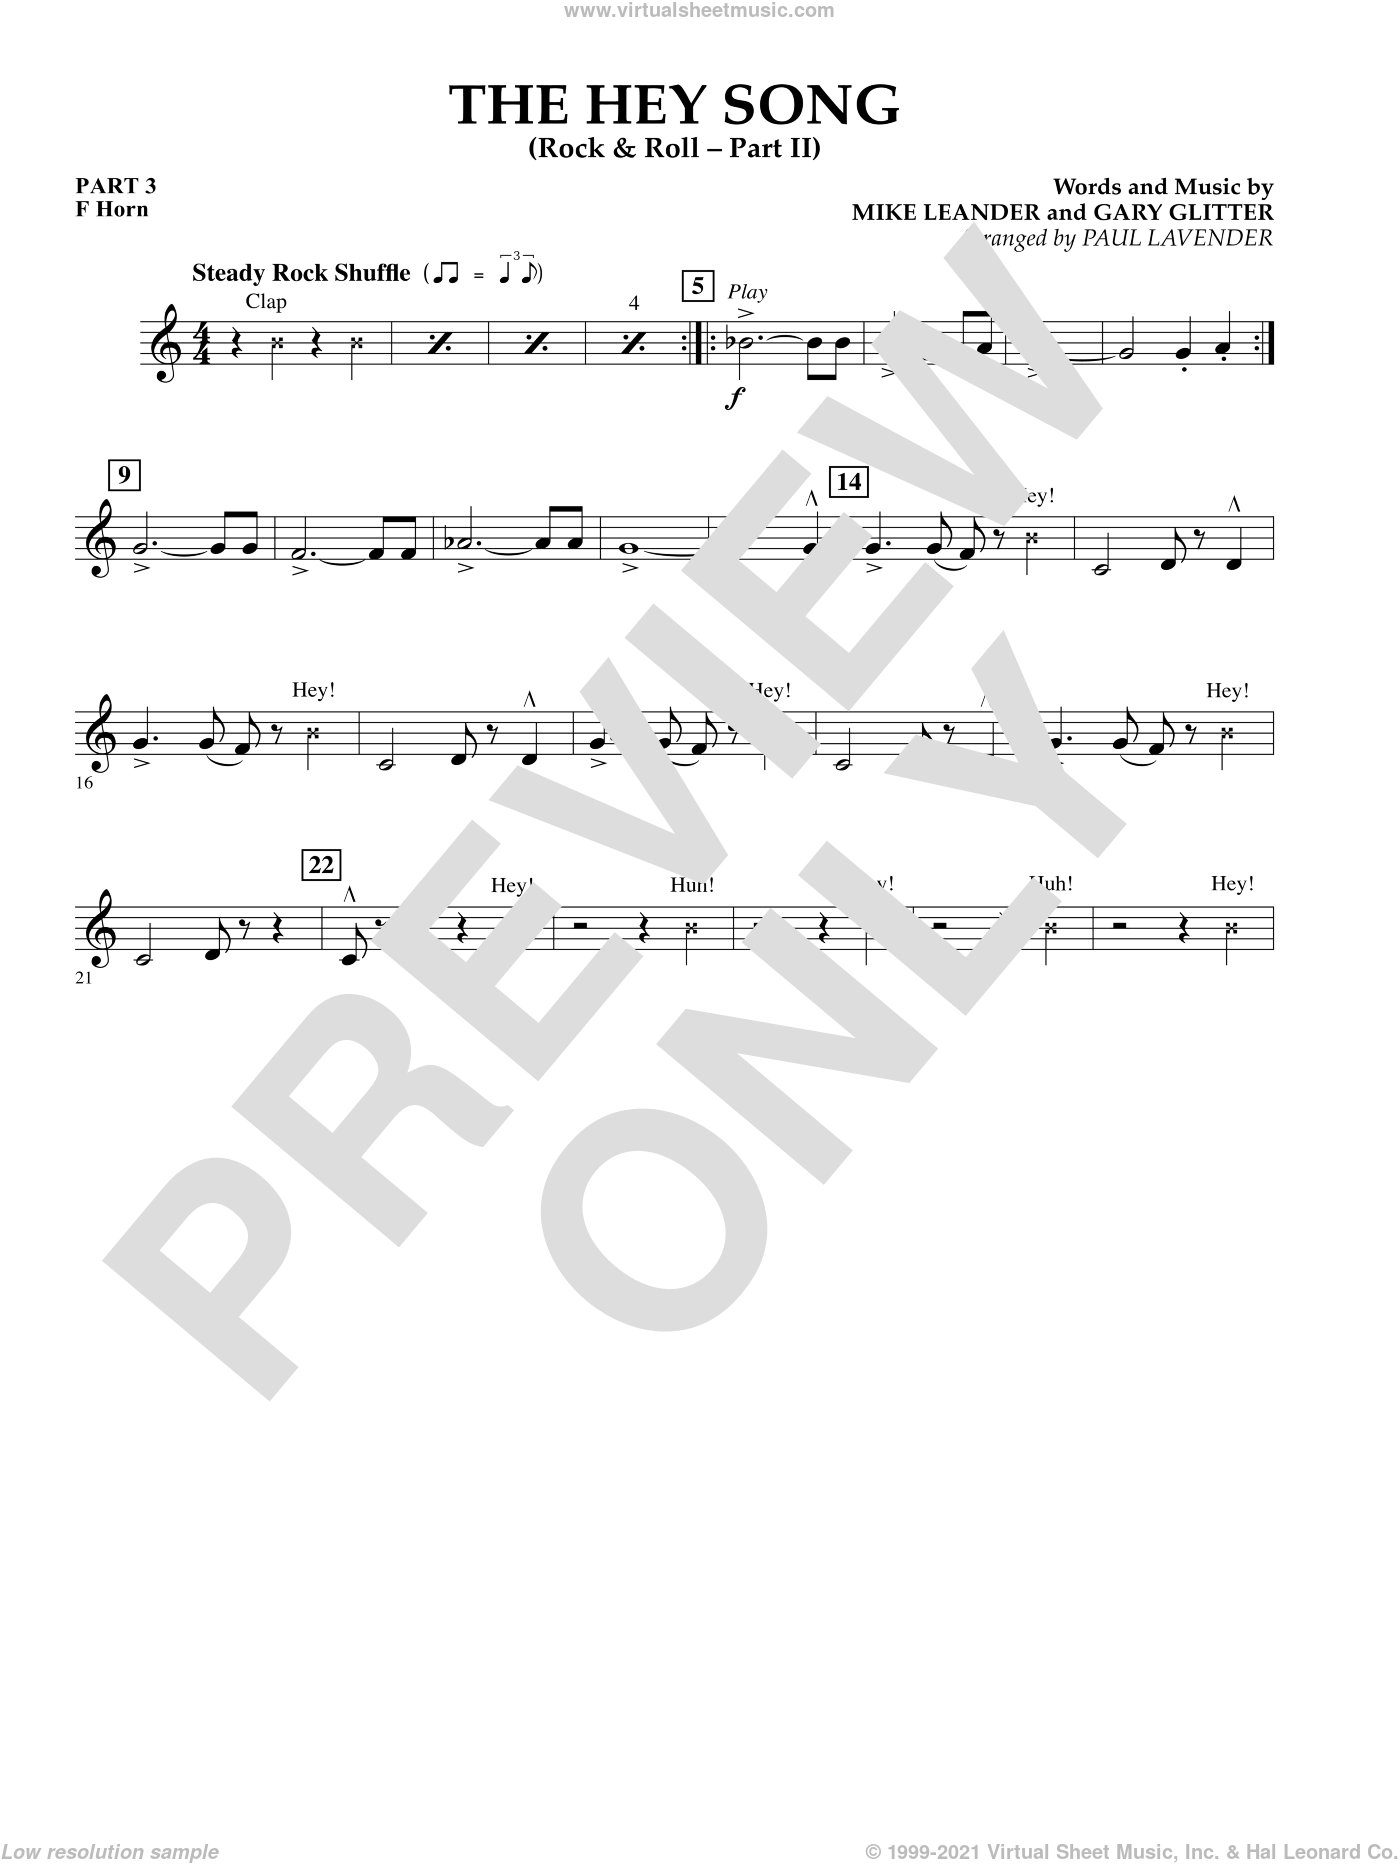 The Hey Song (Rock and Roll Part II) (Flex-Band) sheet music for concert band (pt.3 - f horn) by Gary Glitter, Paul Lavender and Mike Leander, intermediate